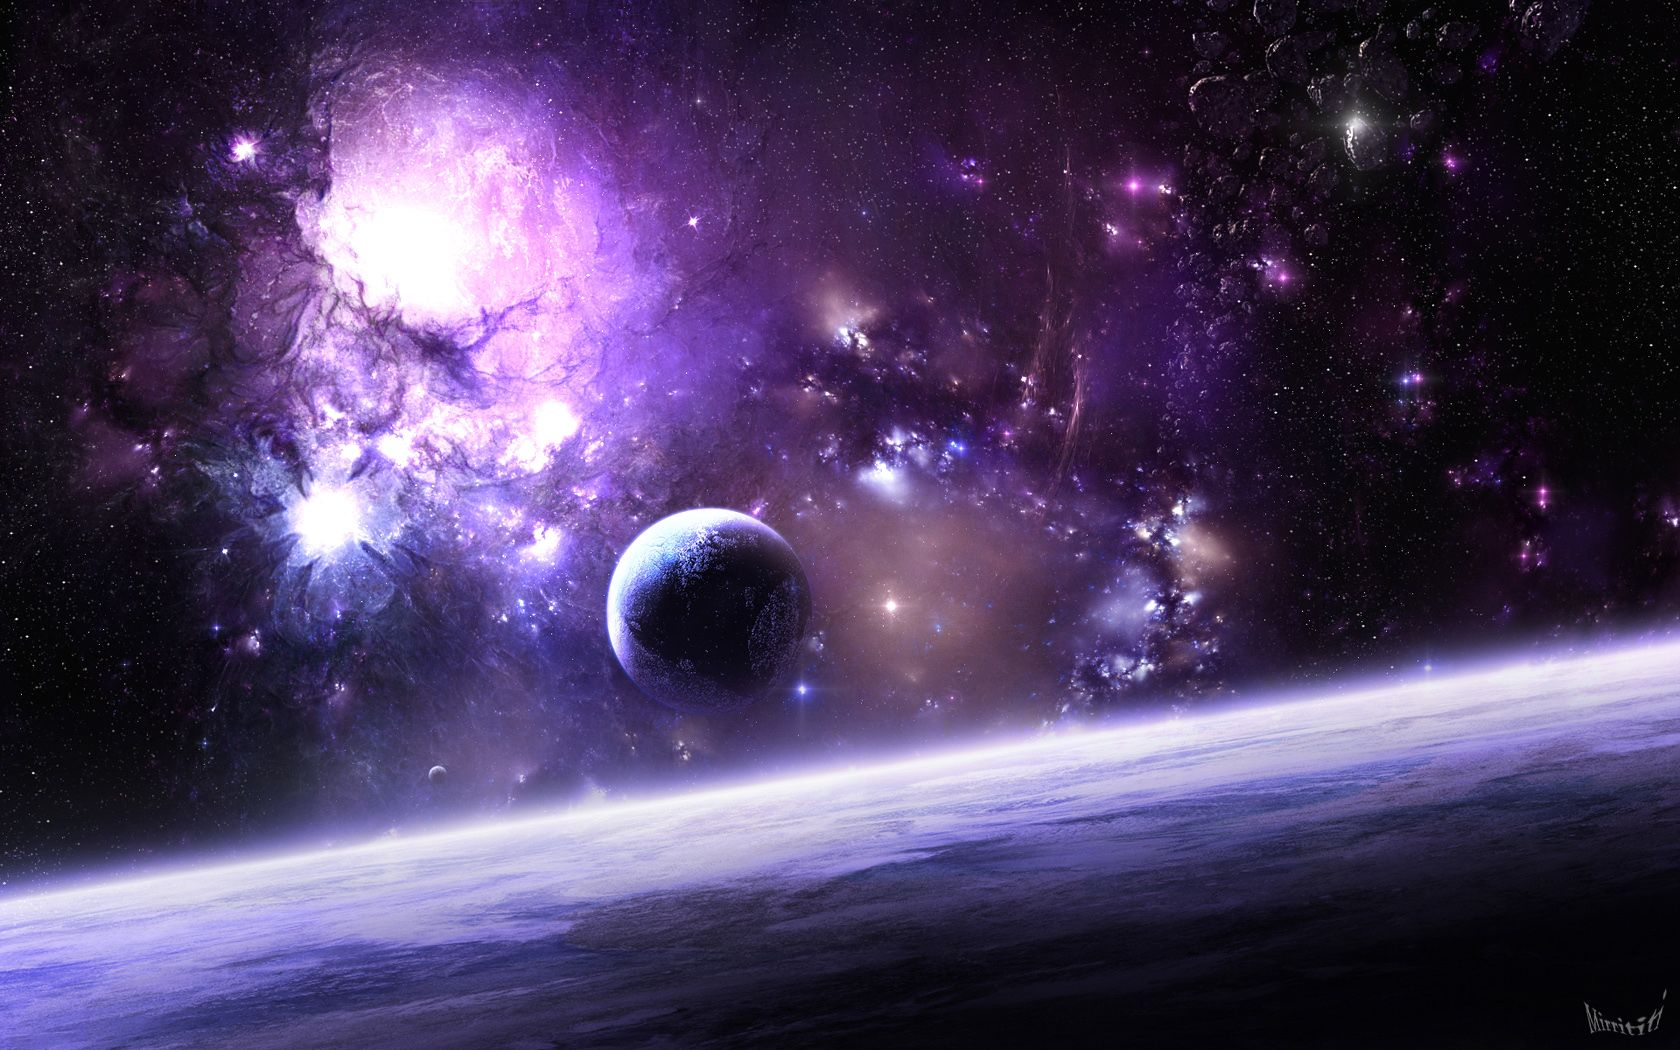 Wallpaper Fond Ecran Space Espace Wallpaper Hd 0010